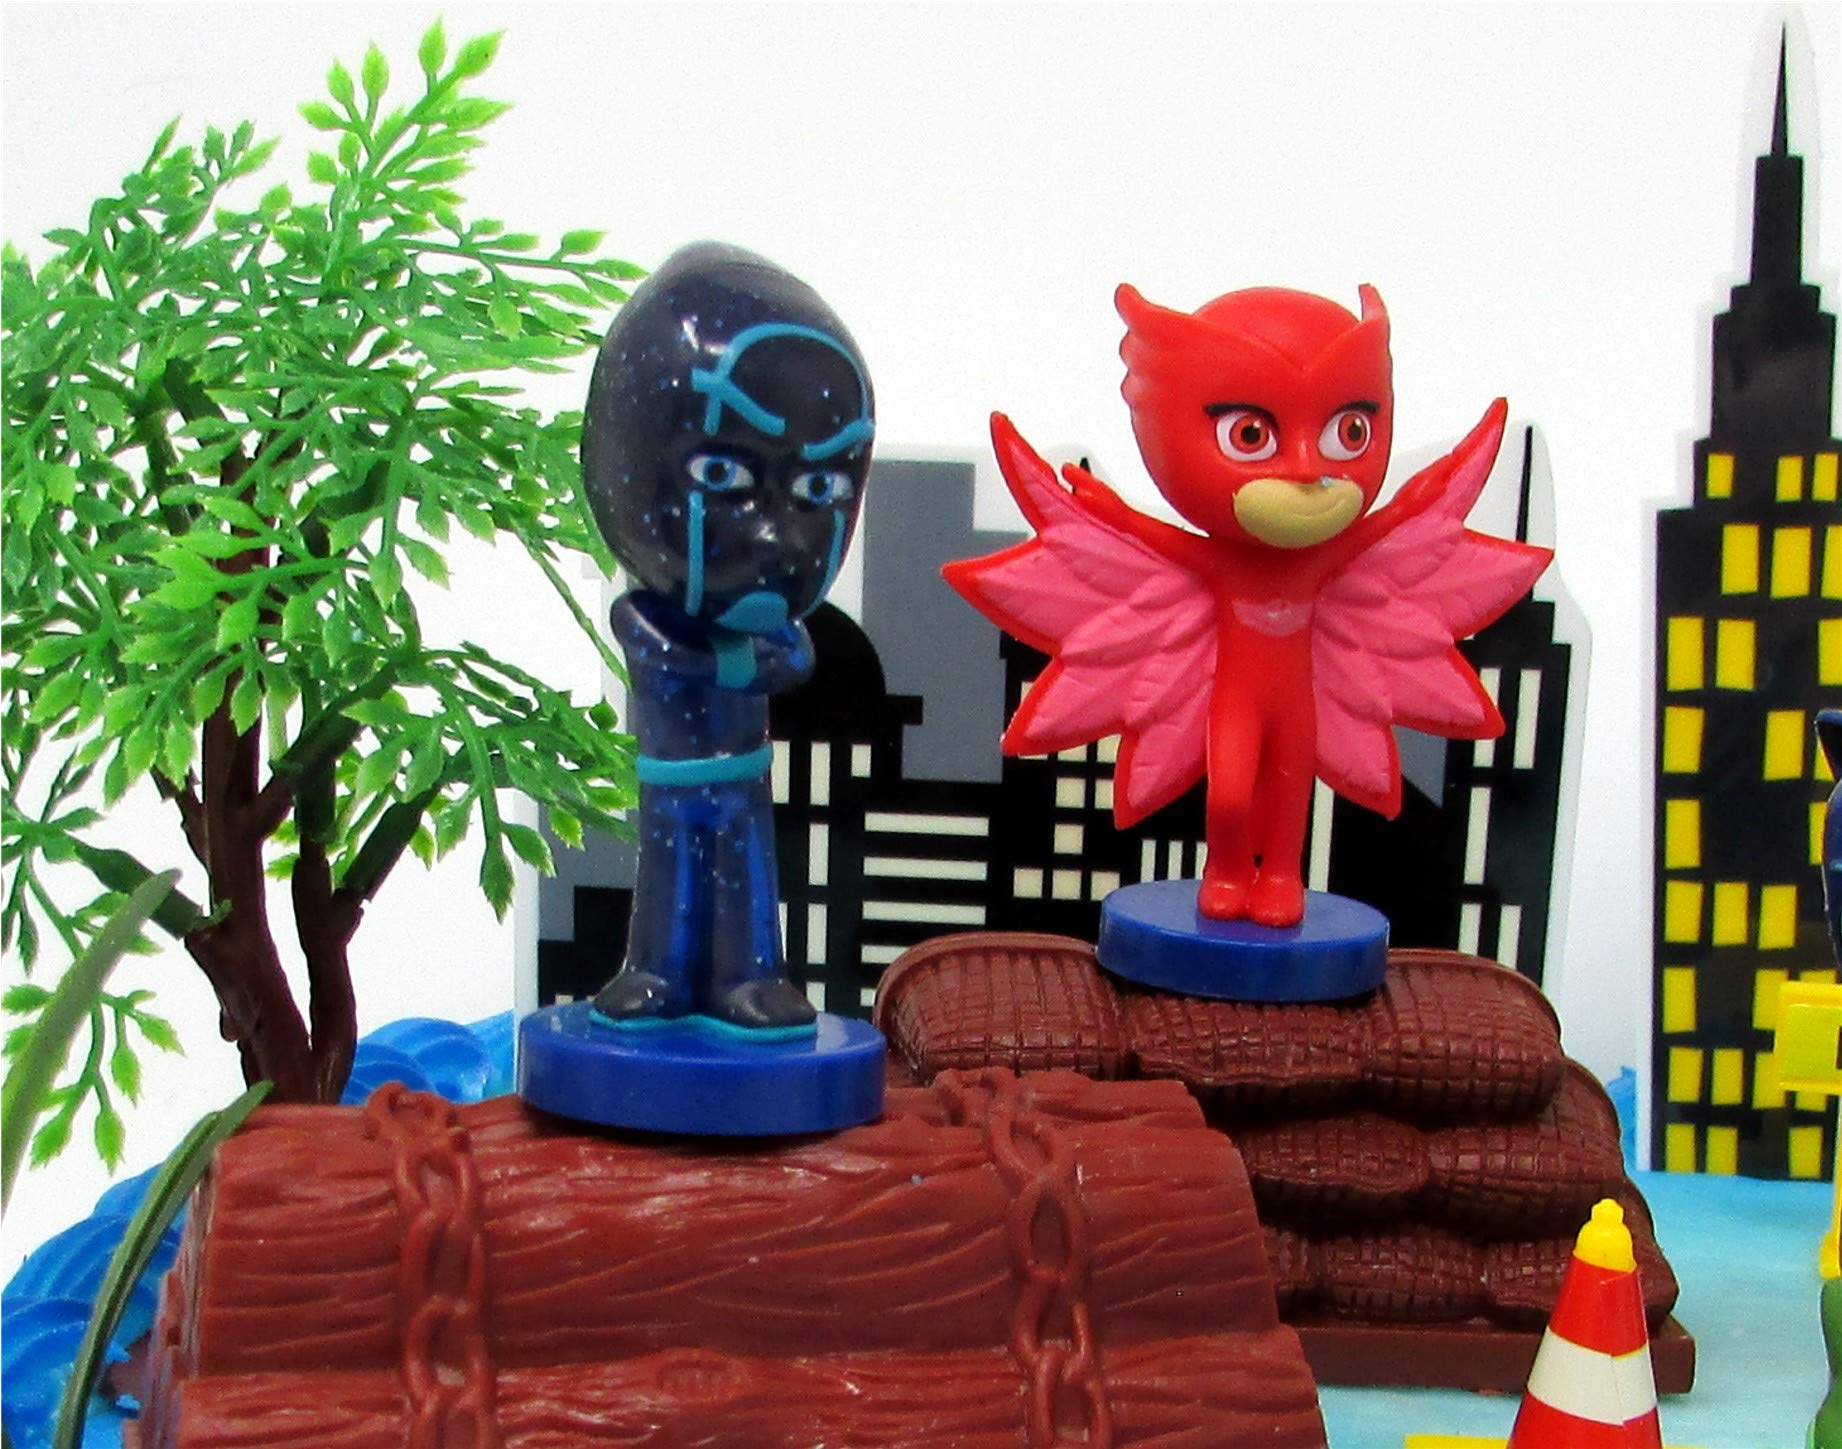 Super Hero PJ MASKS Deluxe Birthday Party Cake Topper Set Featuring Figures and Decorative Accessories by Cake Toppers (Image #6)